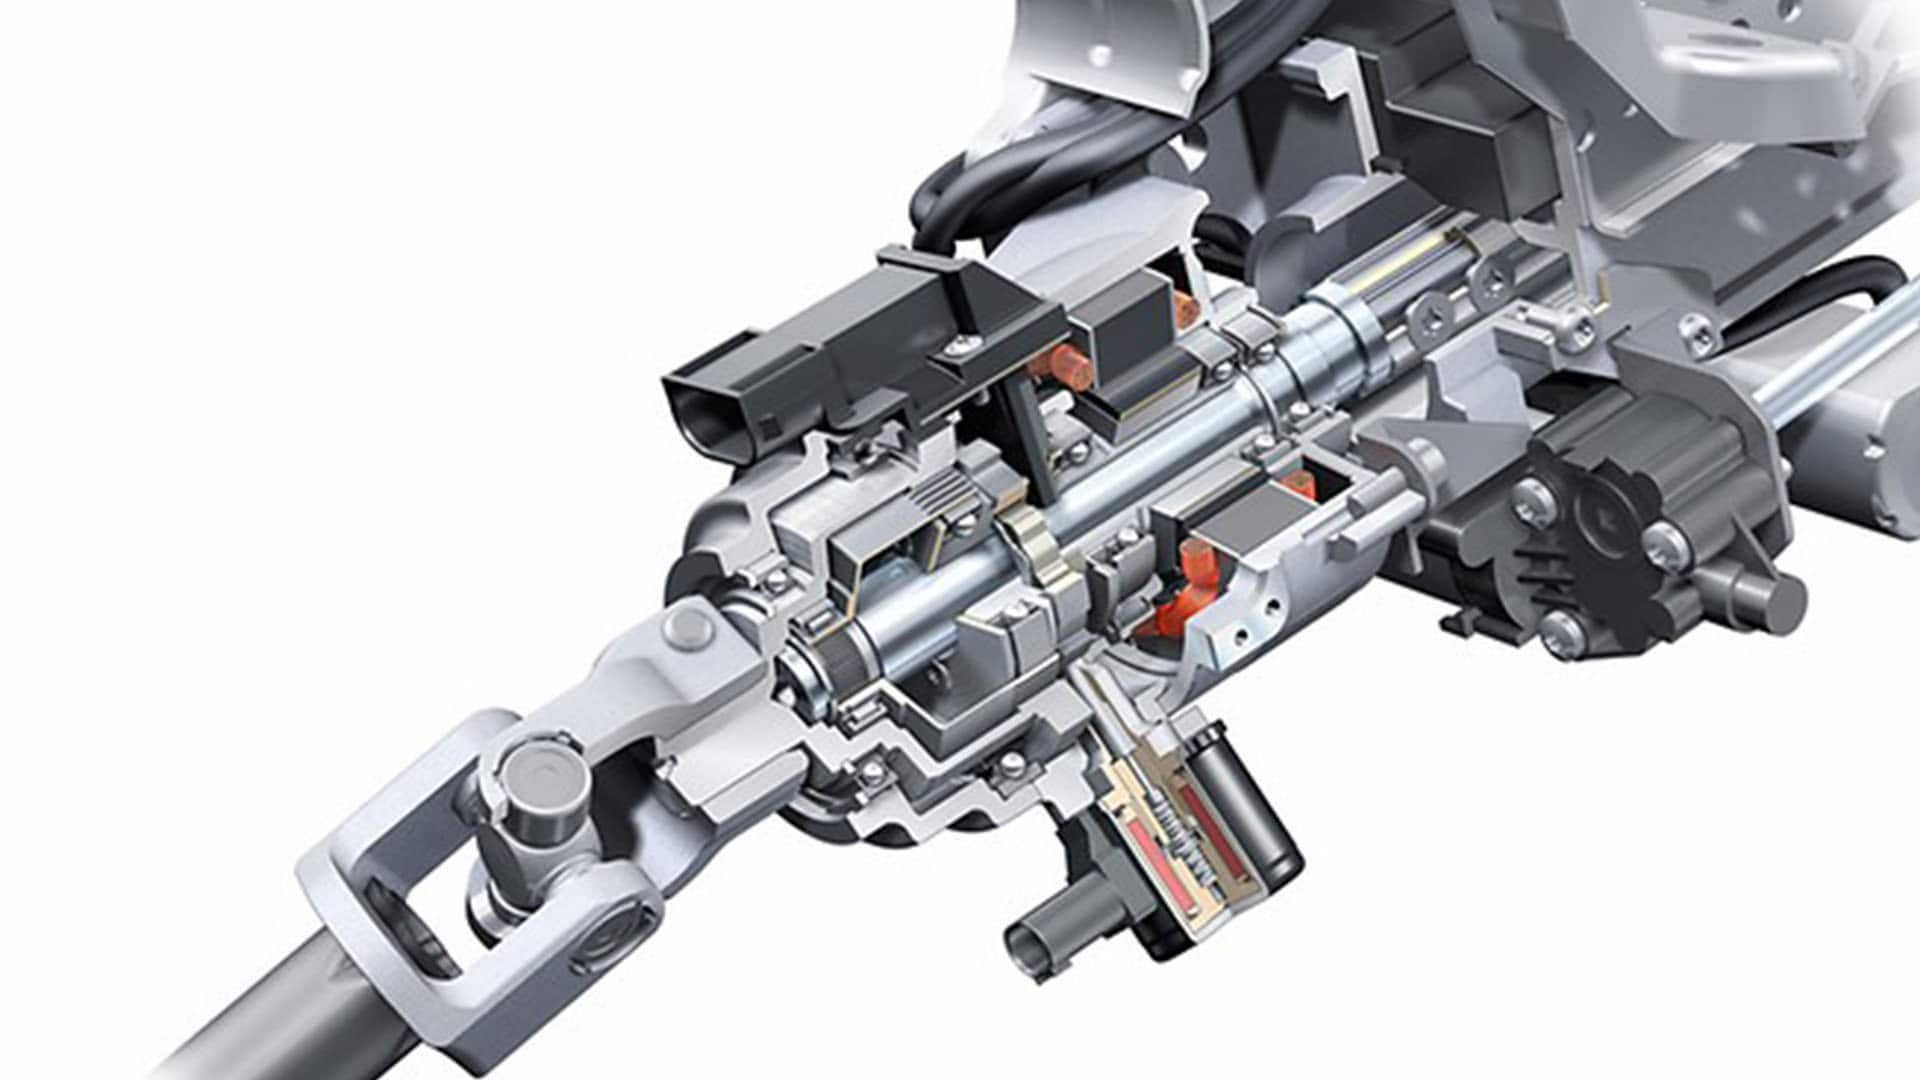 technology_chassis_steering_3_1920x1080.jpg